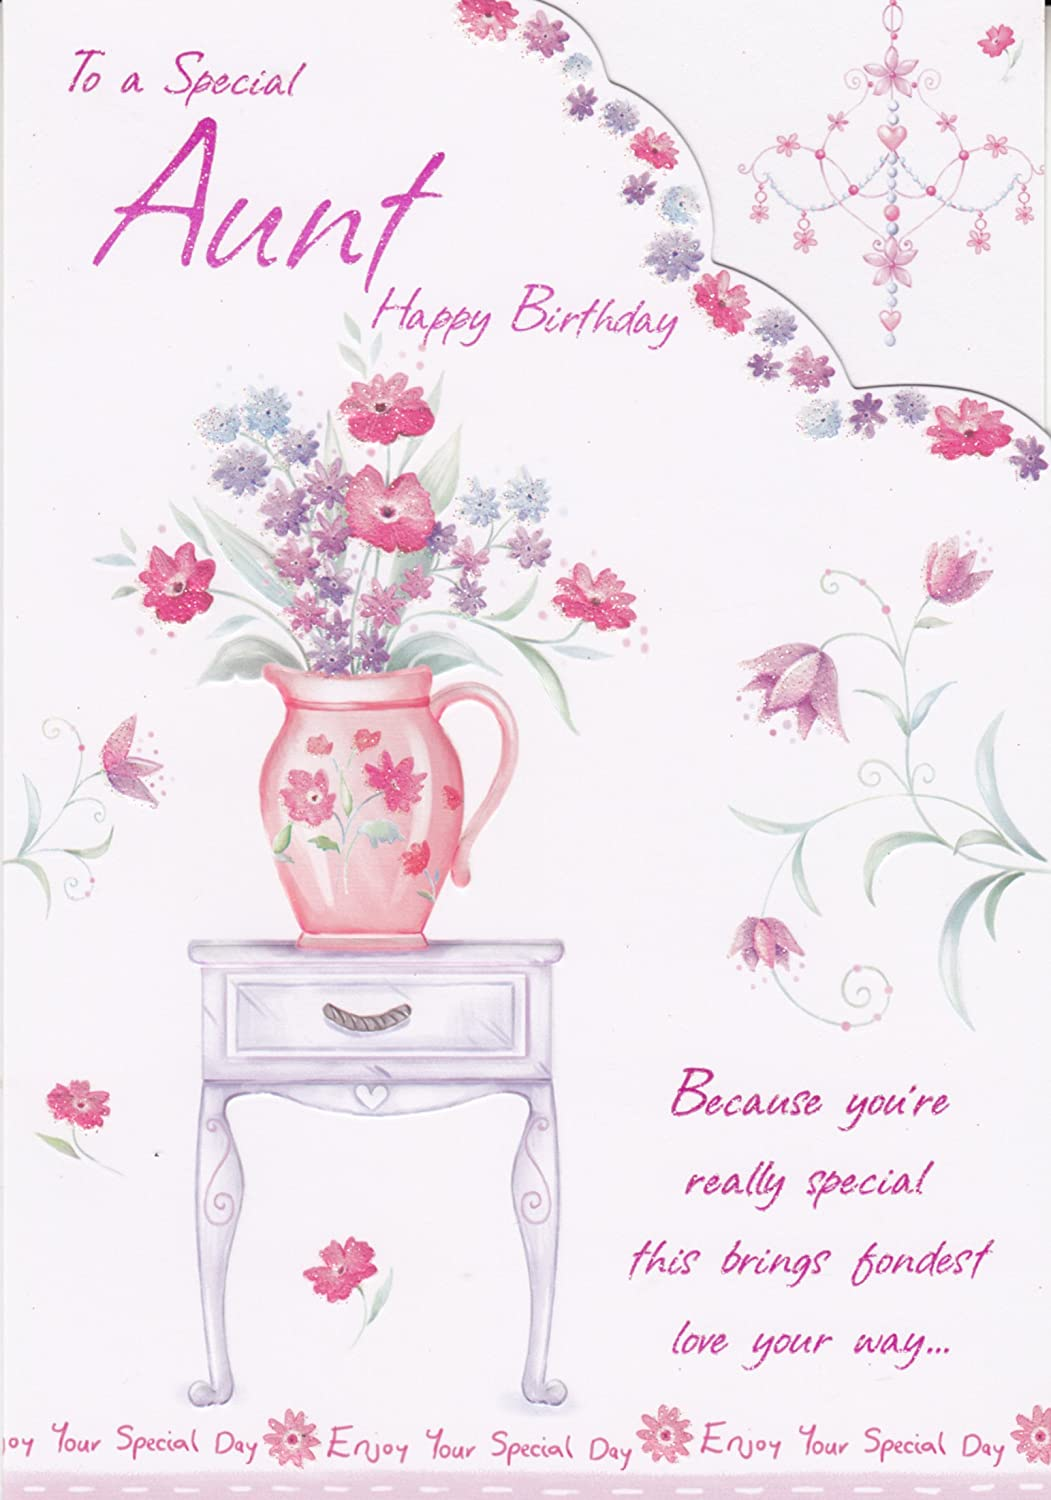 To A Special Aunt Happy Birthday Birthday Greeting Card Amazon